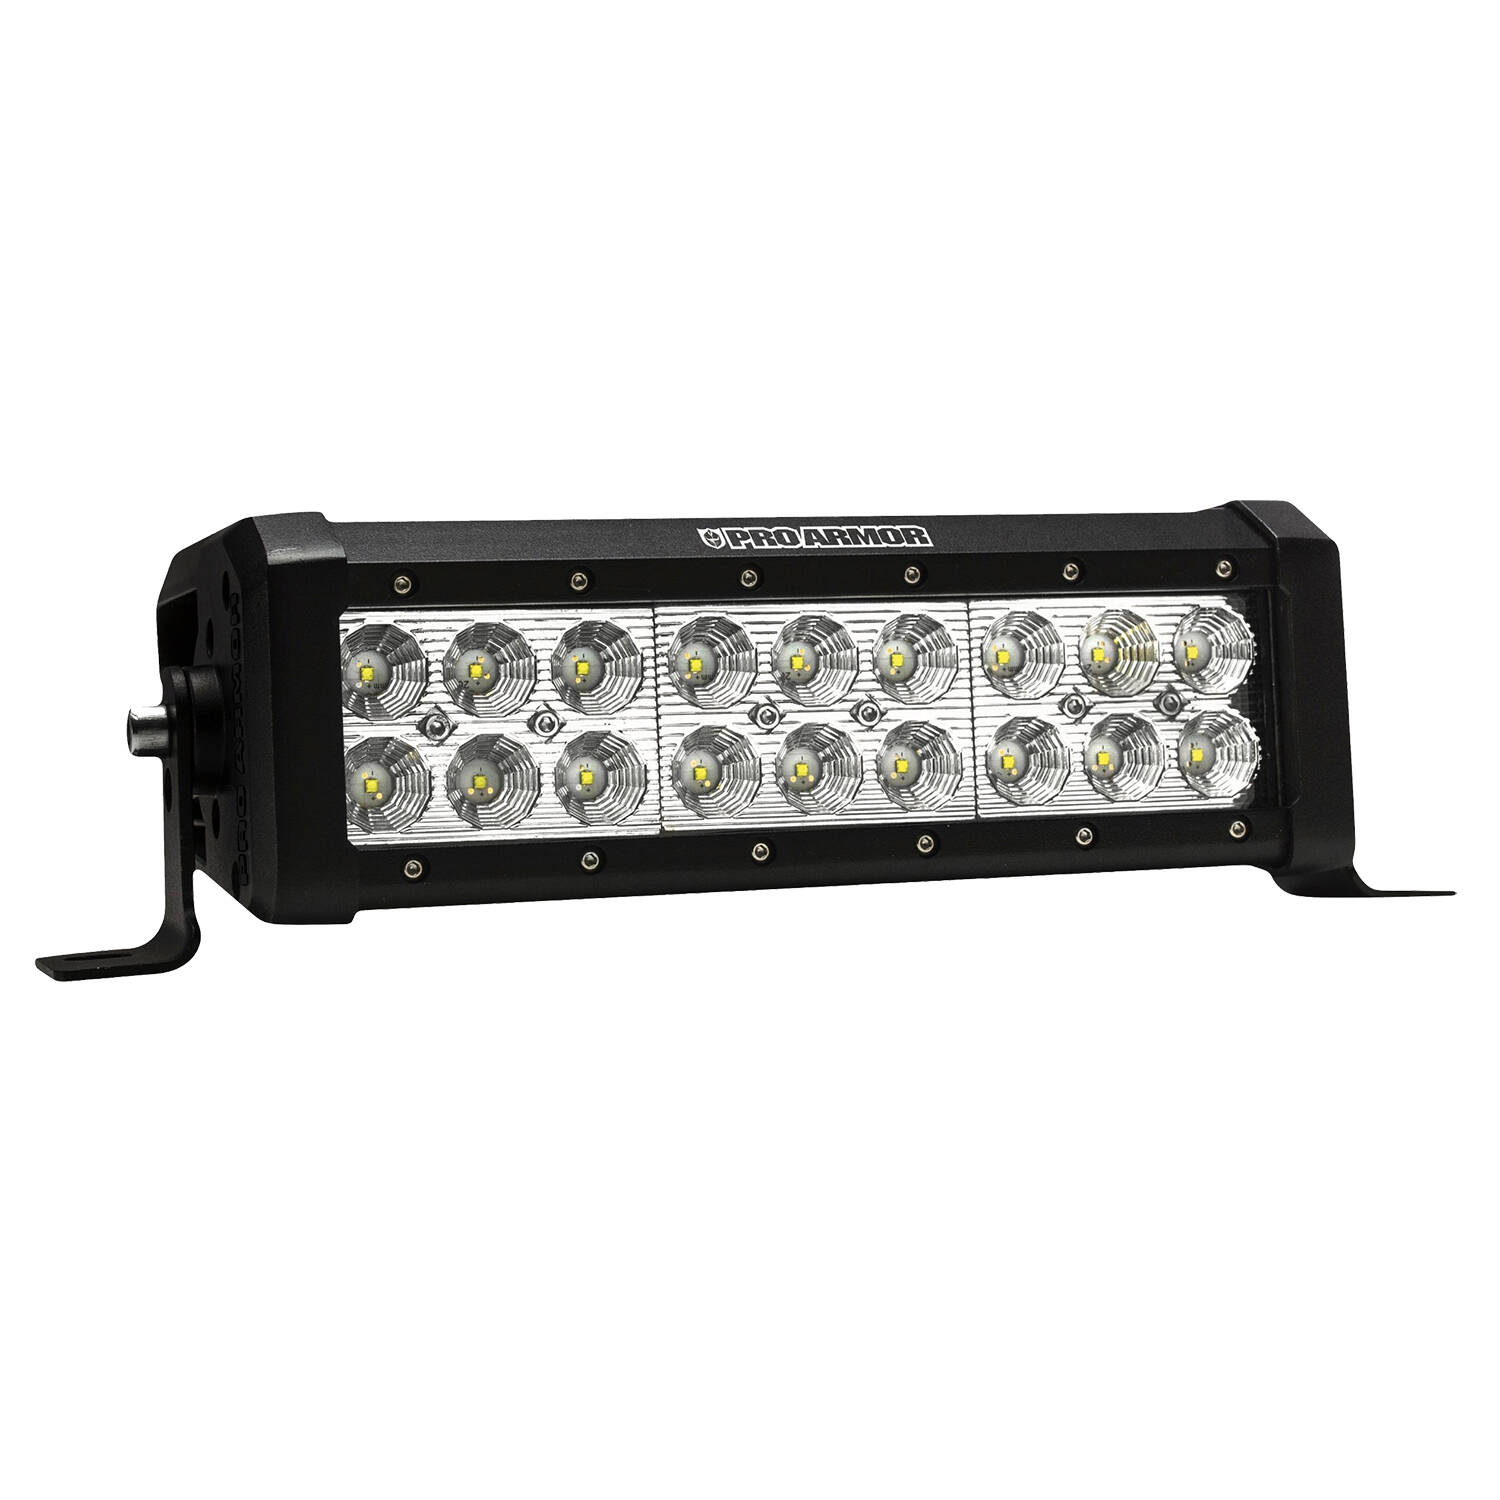 "Pro Armor® 10"" Dual Row - LED Flood Light"